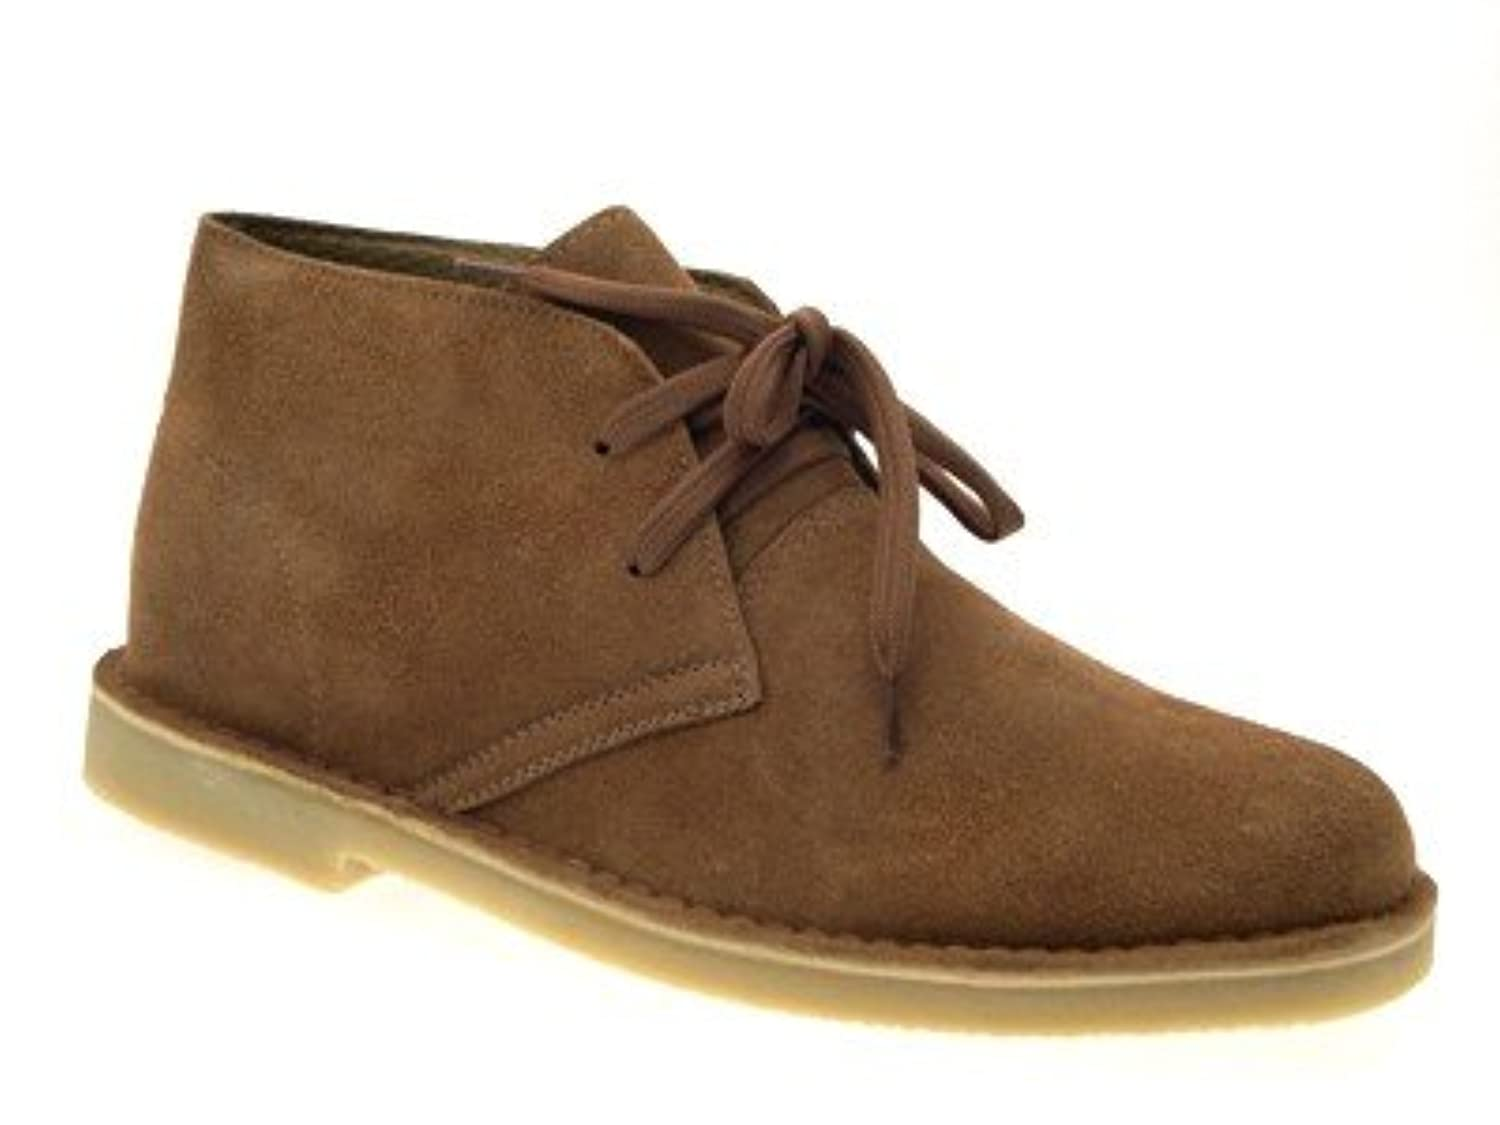 MENS BOYS FULL SUEDE LEATHER LACE UP DESERT BOOTS ANKLE DESSERT SHOES MID BROWN SIZE 6